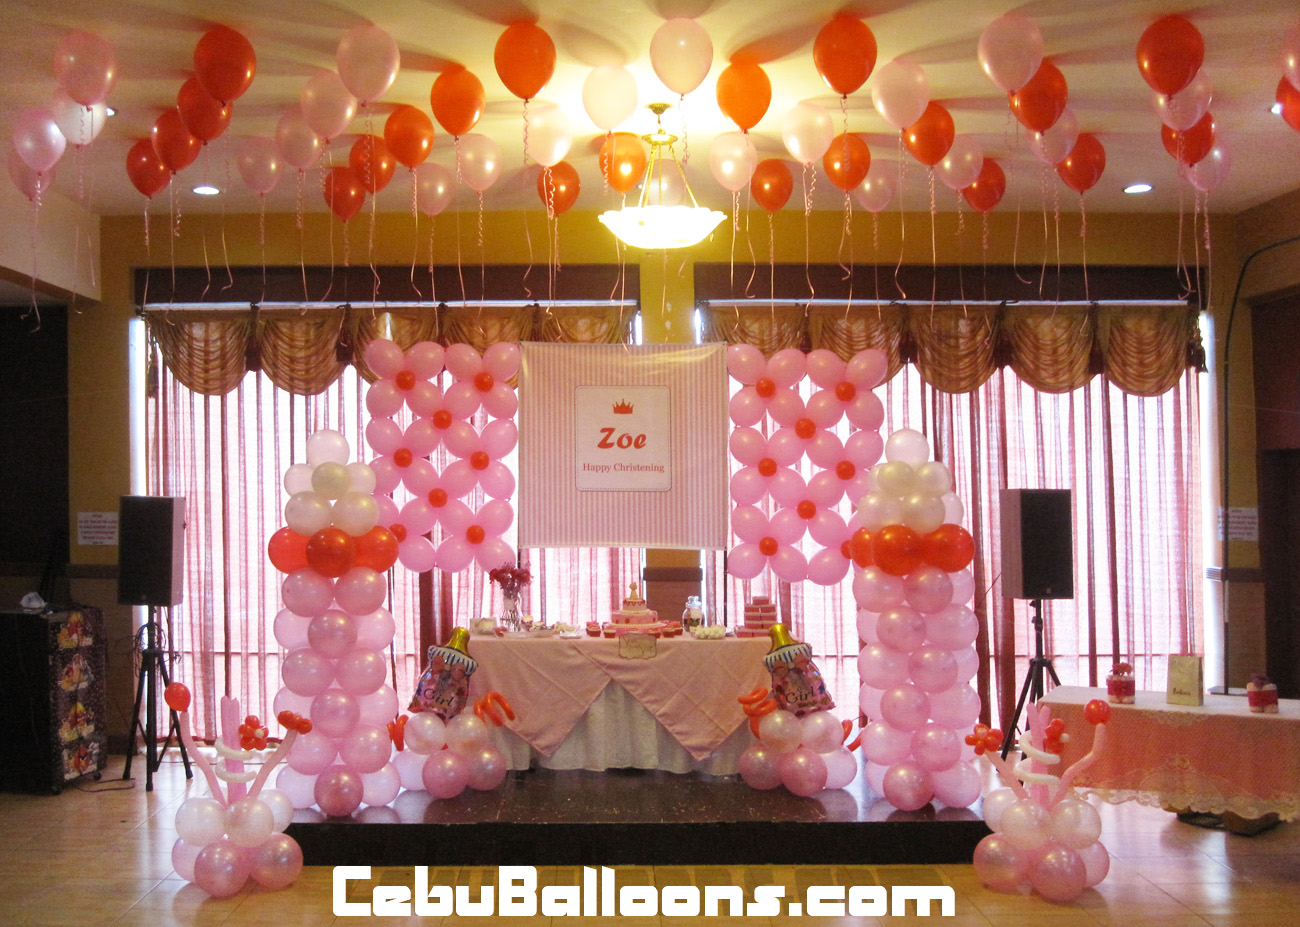 1 Year Old Birthday Party Queens Ny